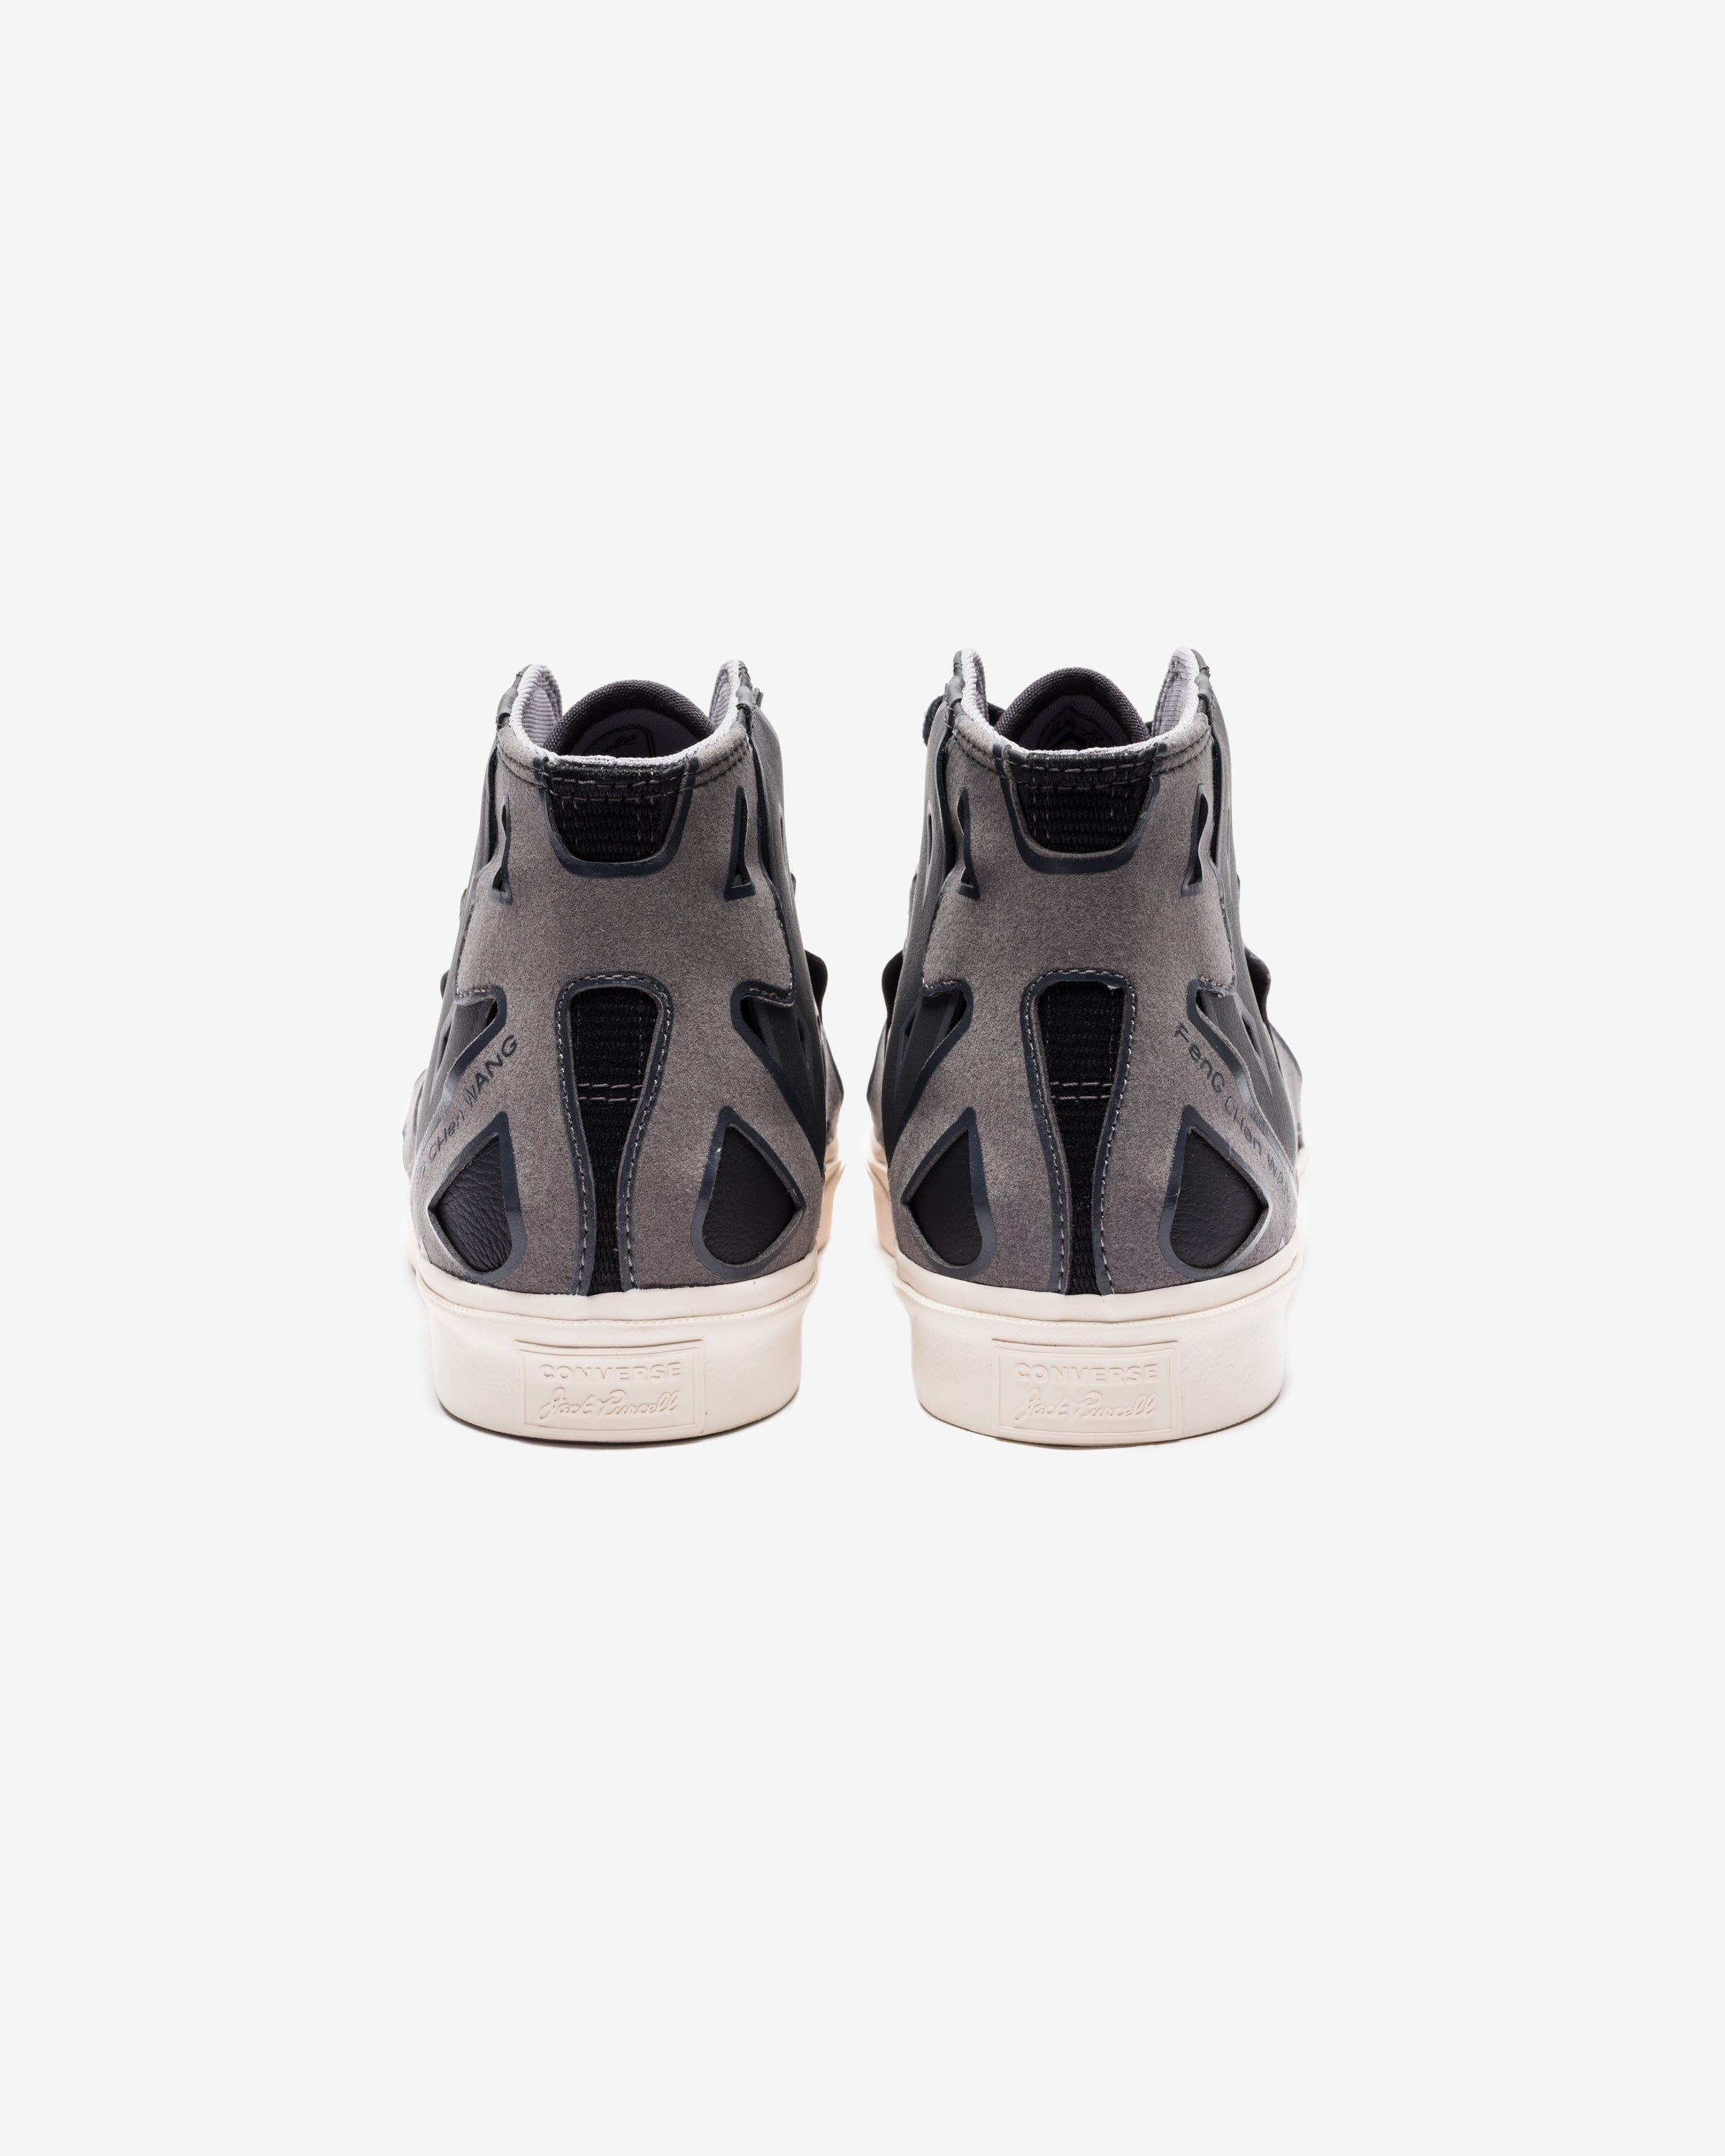 JACK PURCELL MID FENG CHEN WANG -  OBSIDIAN/ SEASALT/ BLACK